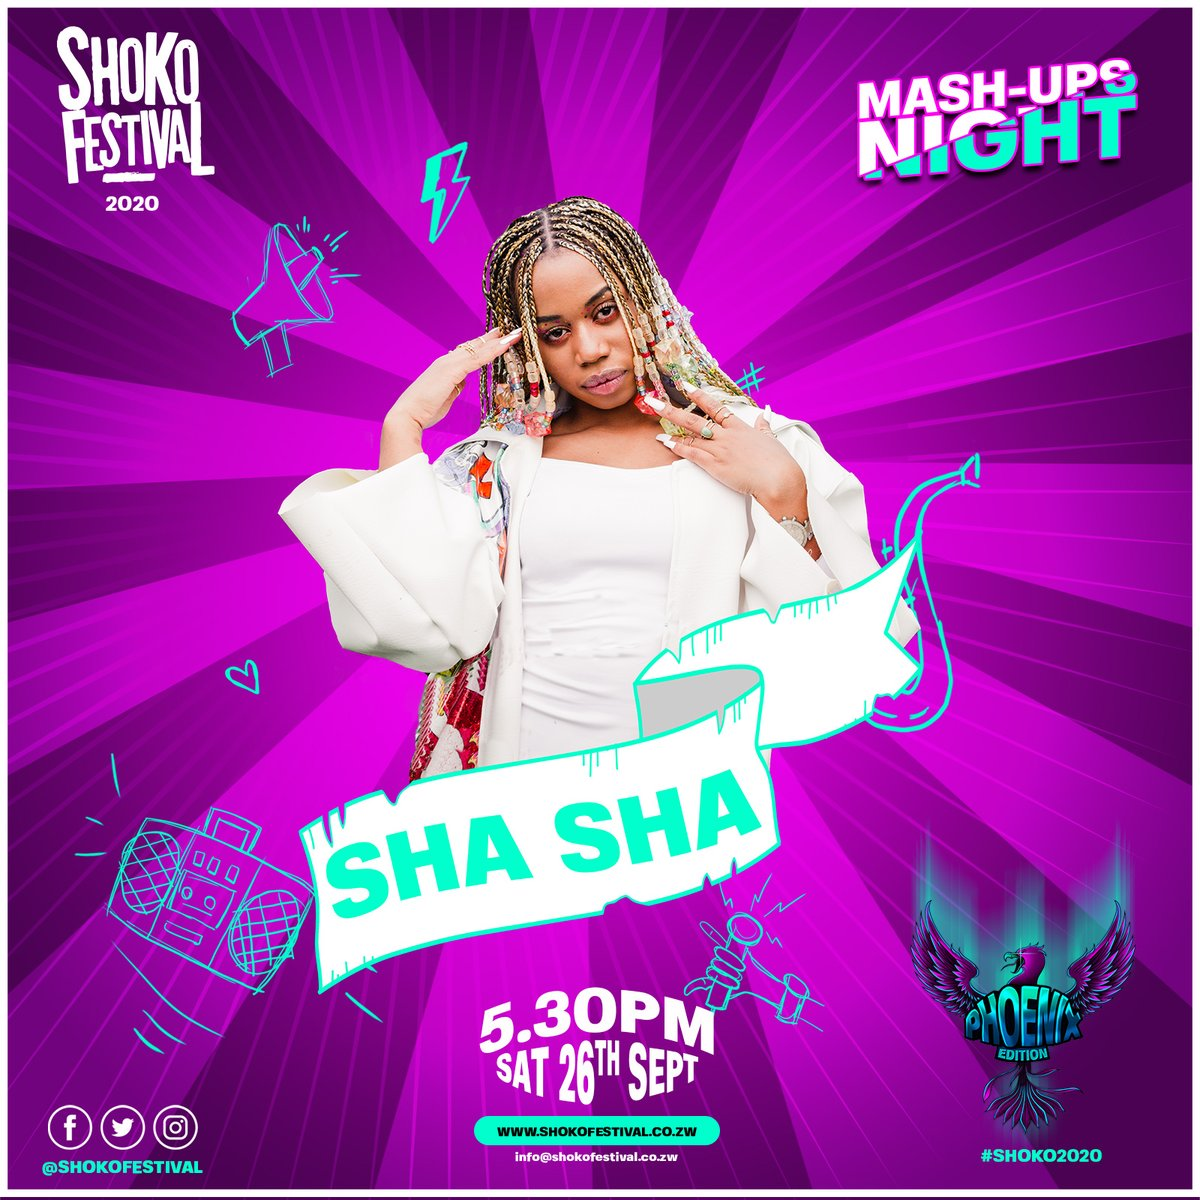 ⚠️ BIG ANNOUNCEMENT ⚠️.  We are ecstatic to announce that @ShaShaOfficial_  will be headlining #Shoko2020 along with Ti Gonzi, Poptain and Jah Master. https://t.co/D1oNtuU9cd https://t.co/9QdTIGUgco